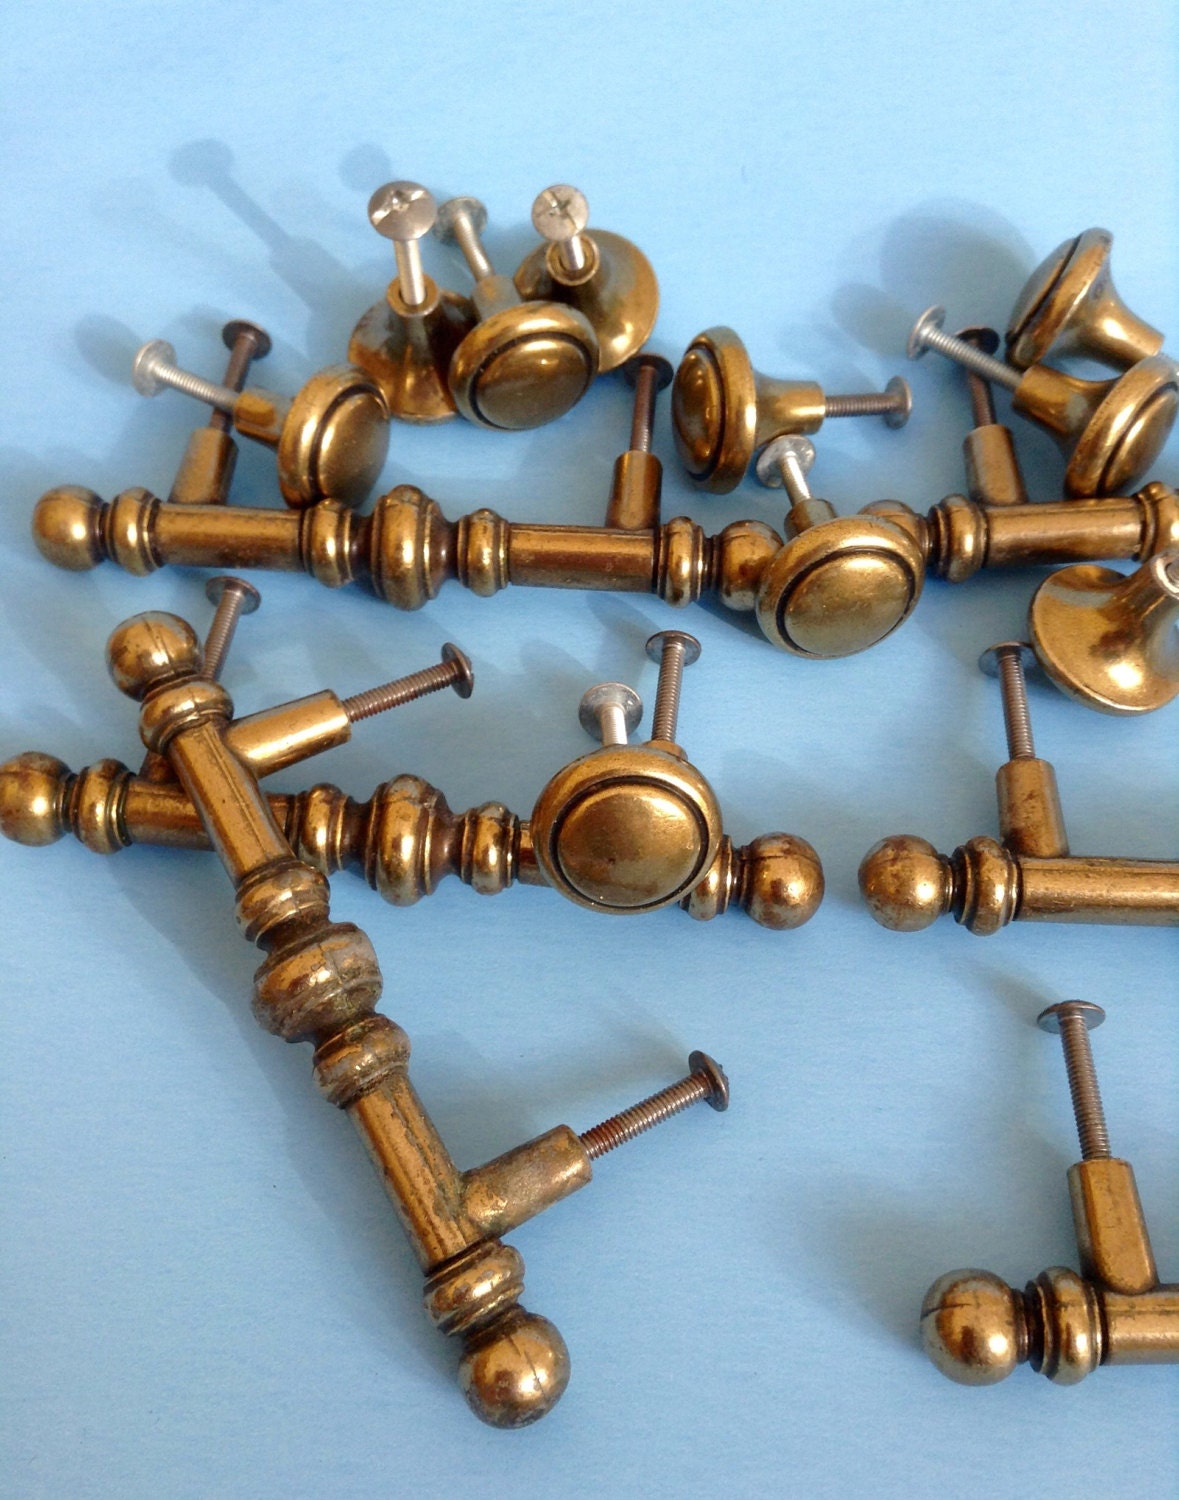 Vintage Canadian drawer pulls and knobs, metal knobs and pulls ...